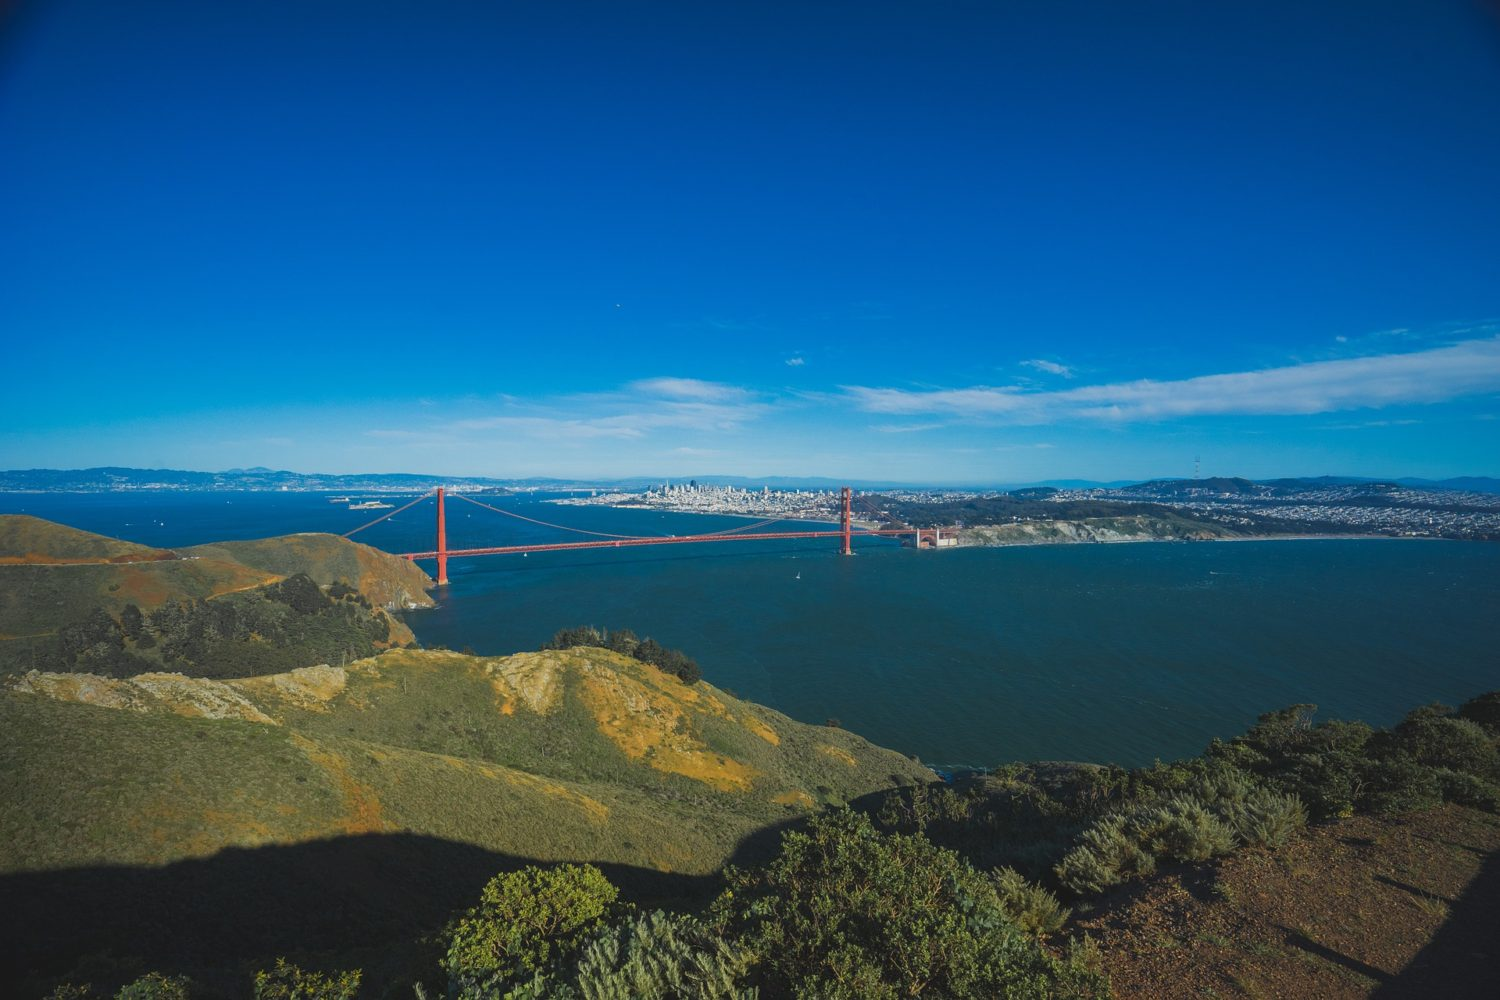 Panorama view of San Francisco and the Golden Gate Bridge